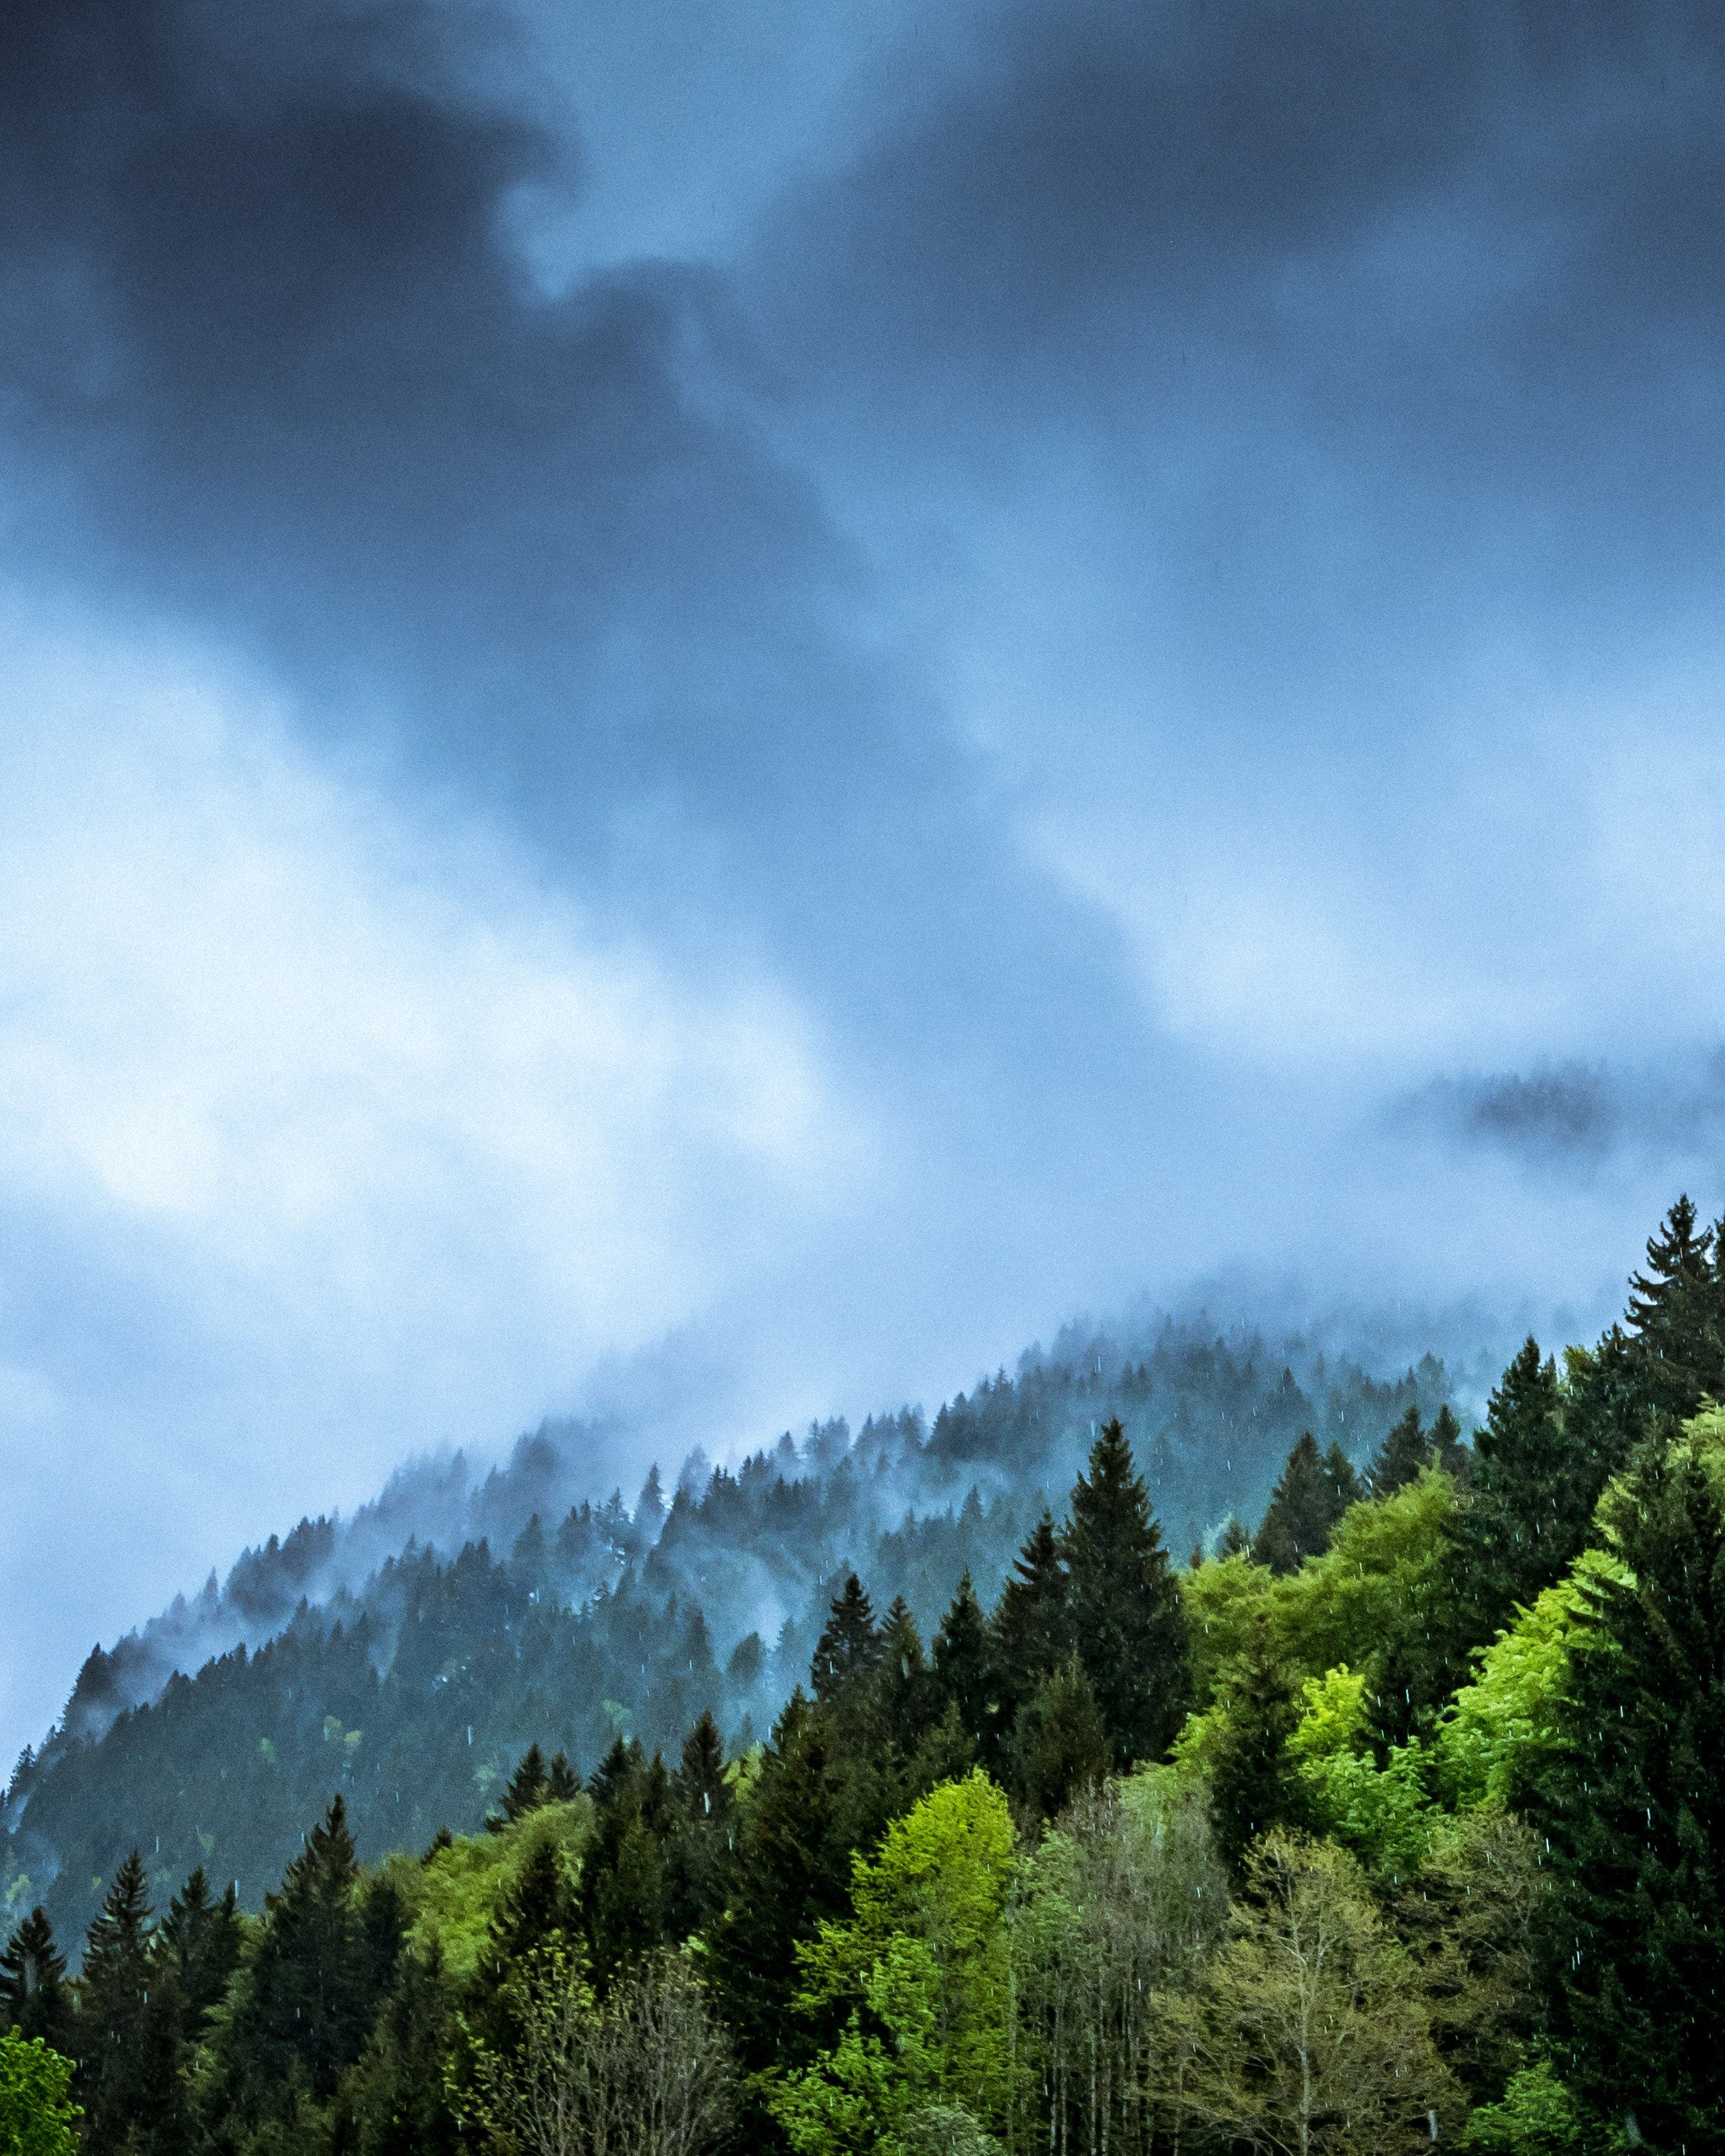 Nature #tree, mountain, cloud, fog, mist #wallpapers hd 4k ...